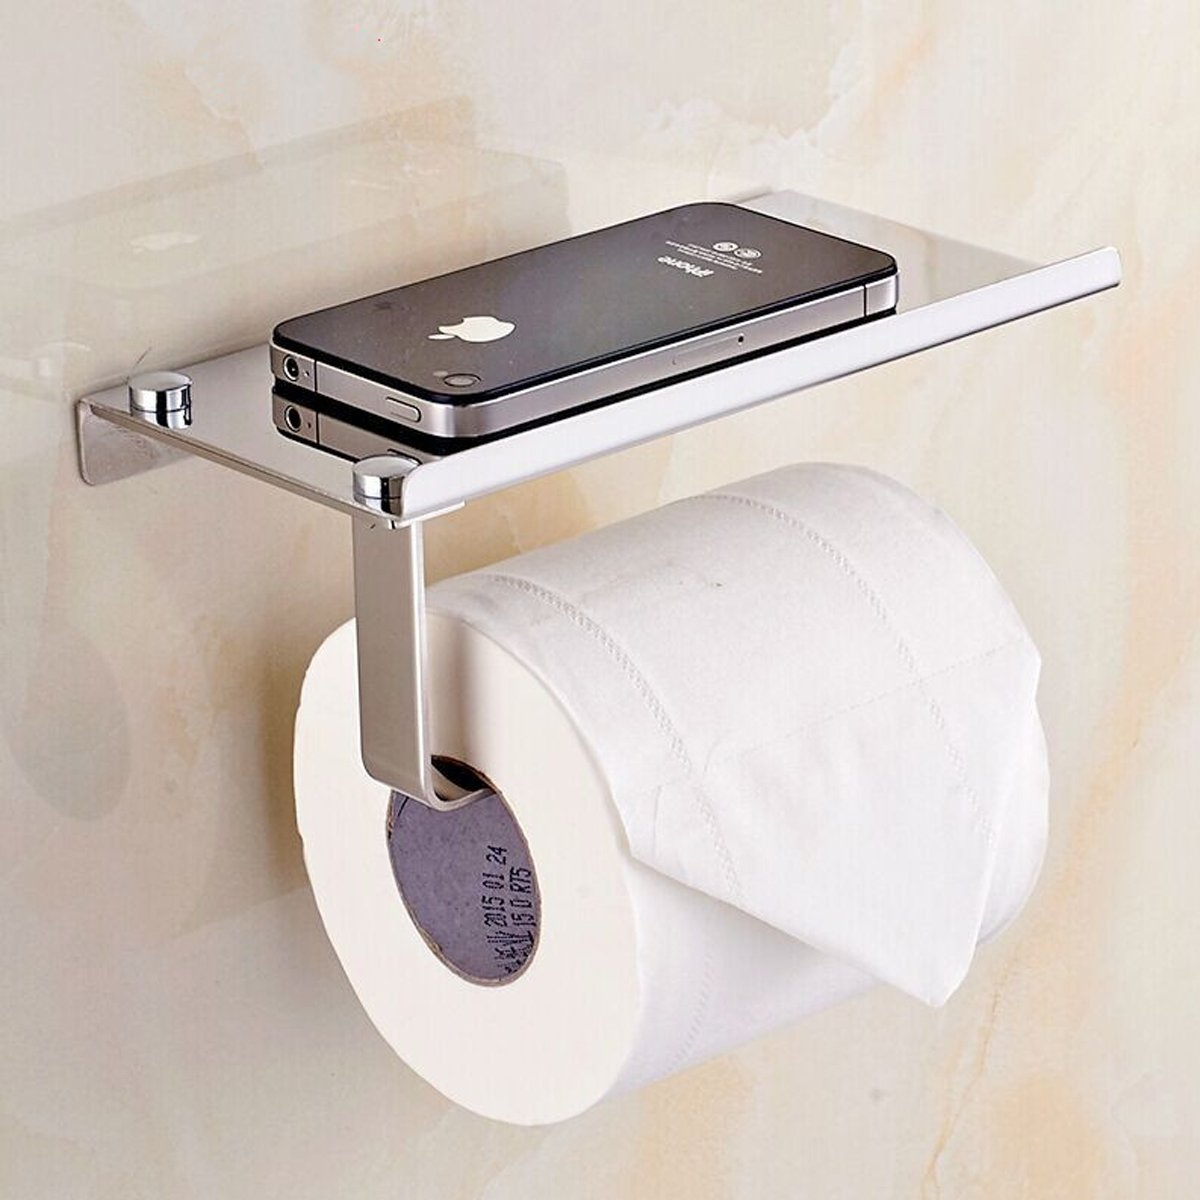 holder toilet swarish power suction dp waterproof white tissue paper bathroom with roll cup